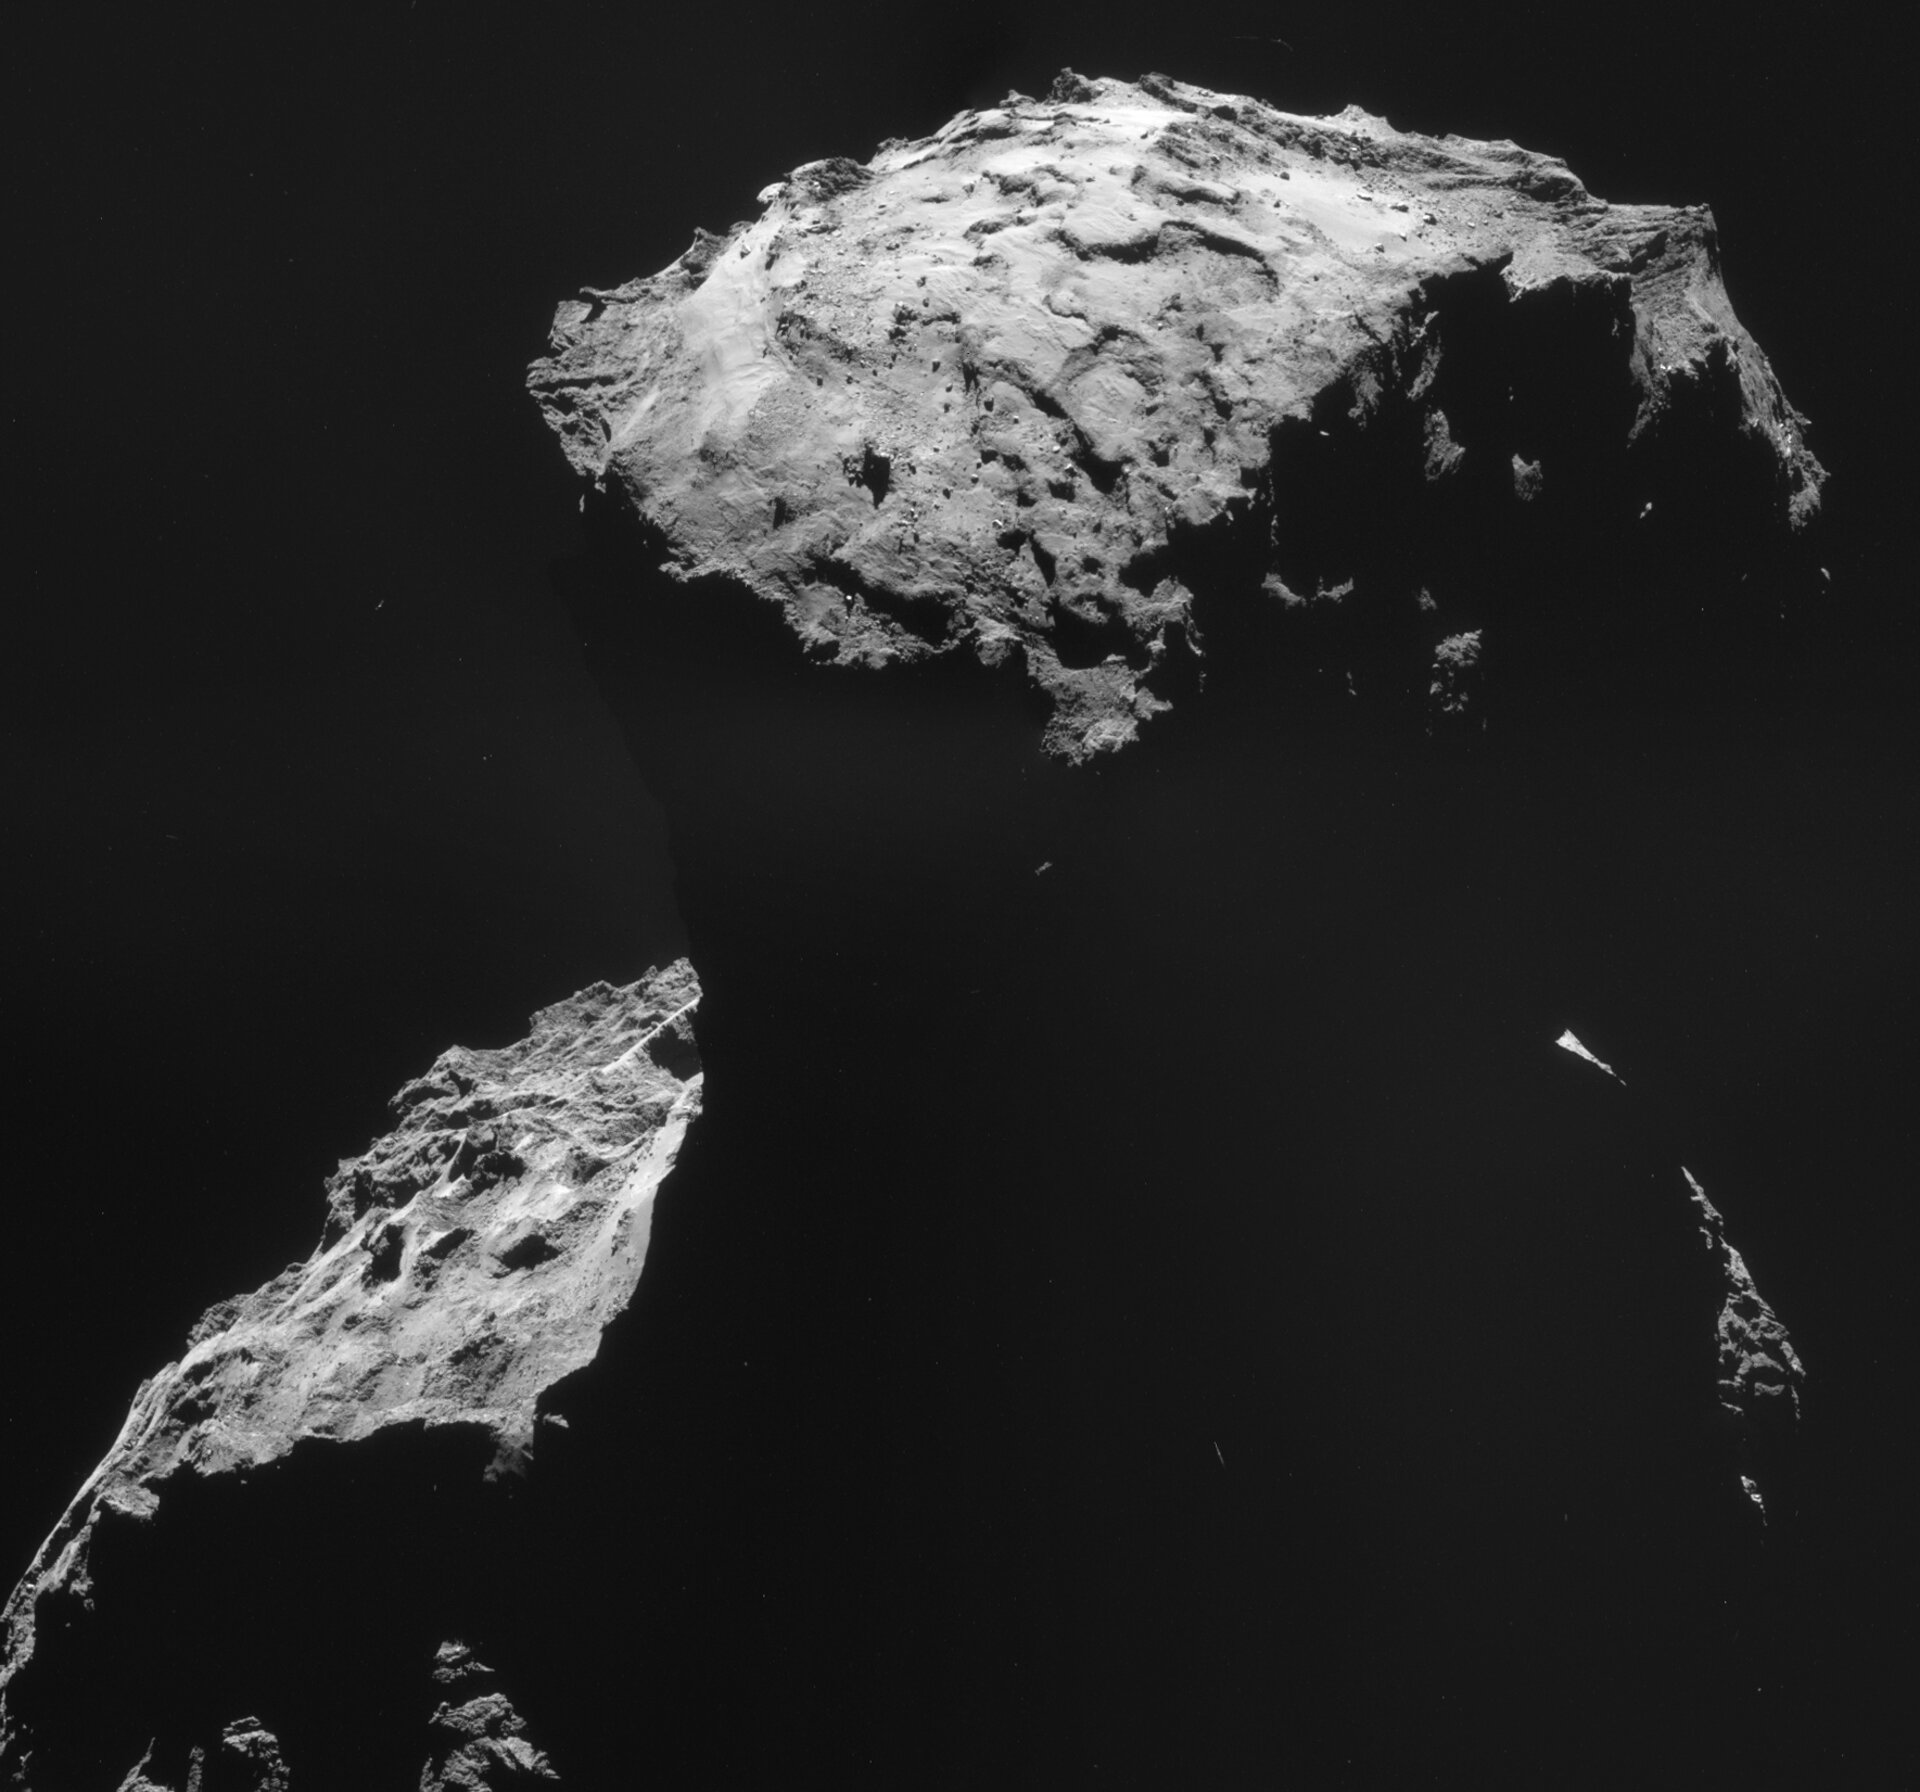 Philae's landing site – 30 October 2014